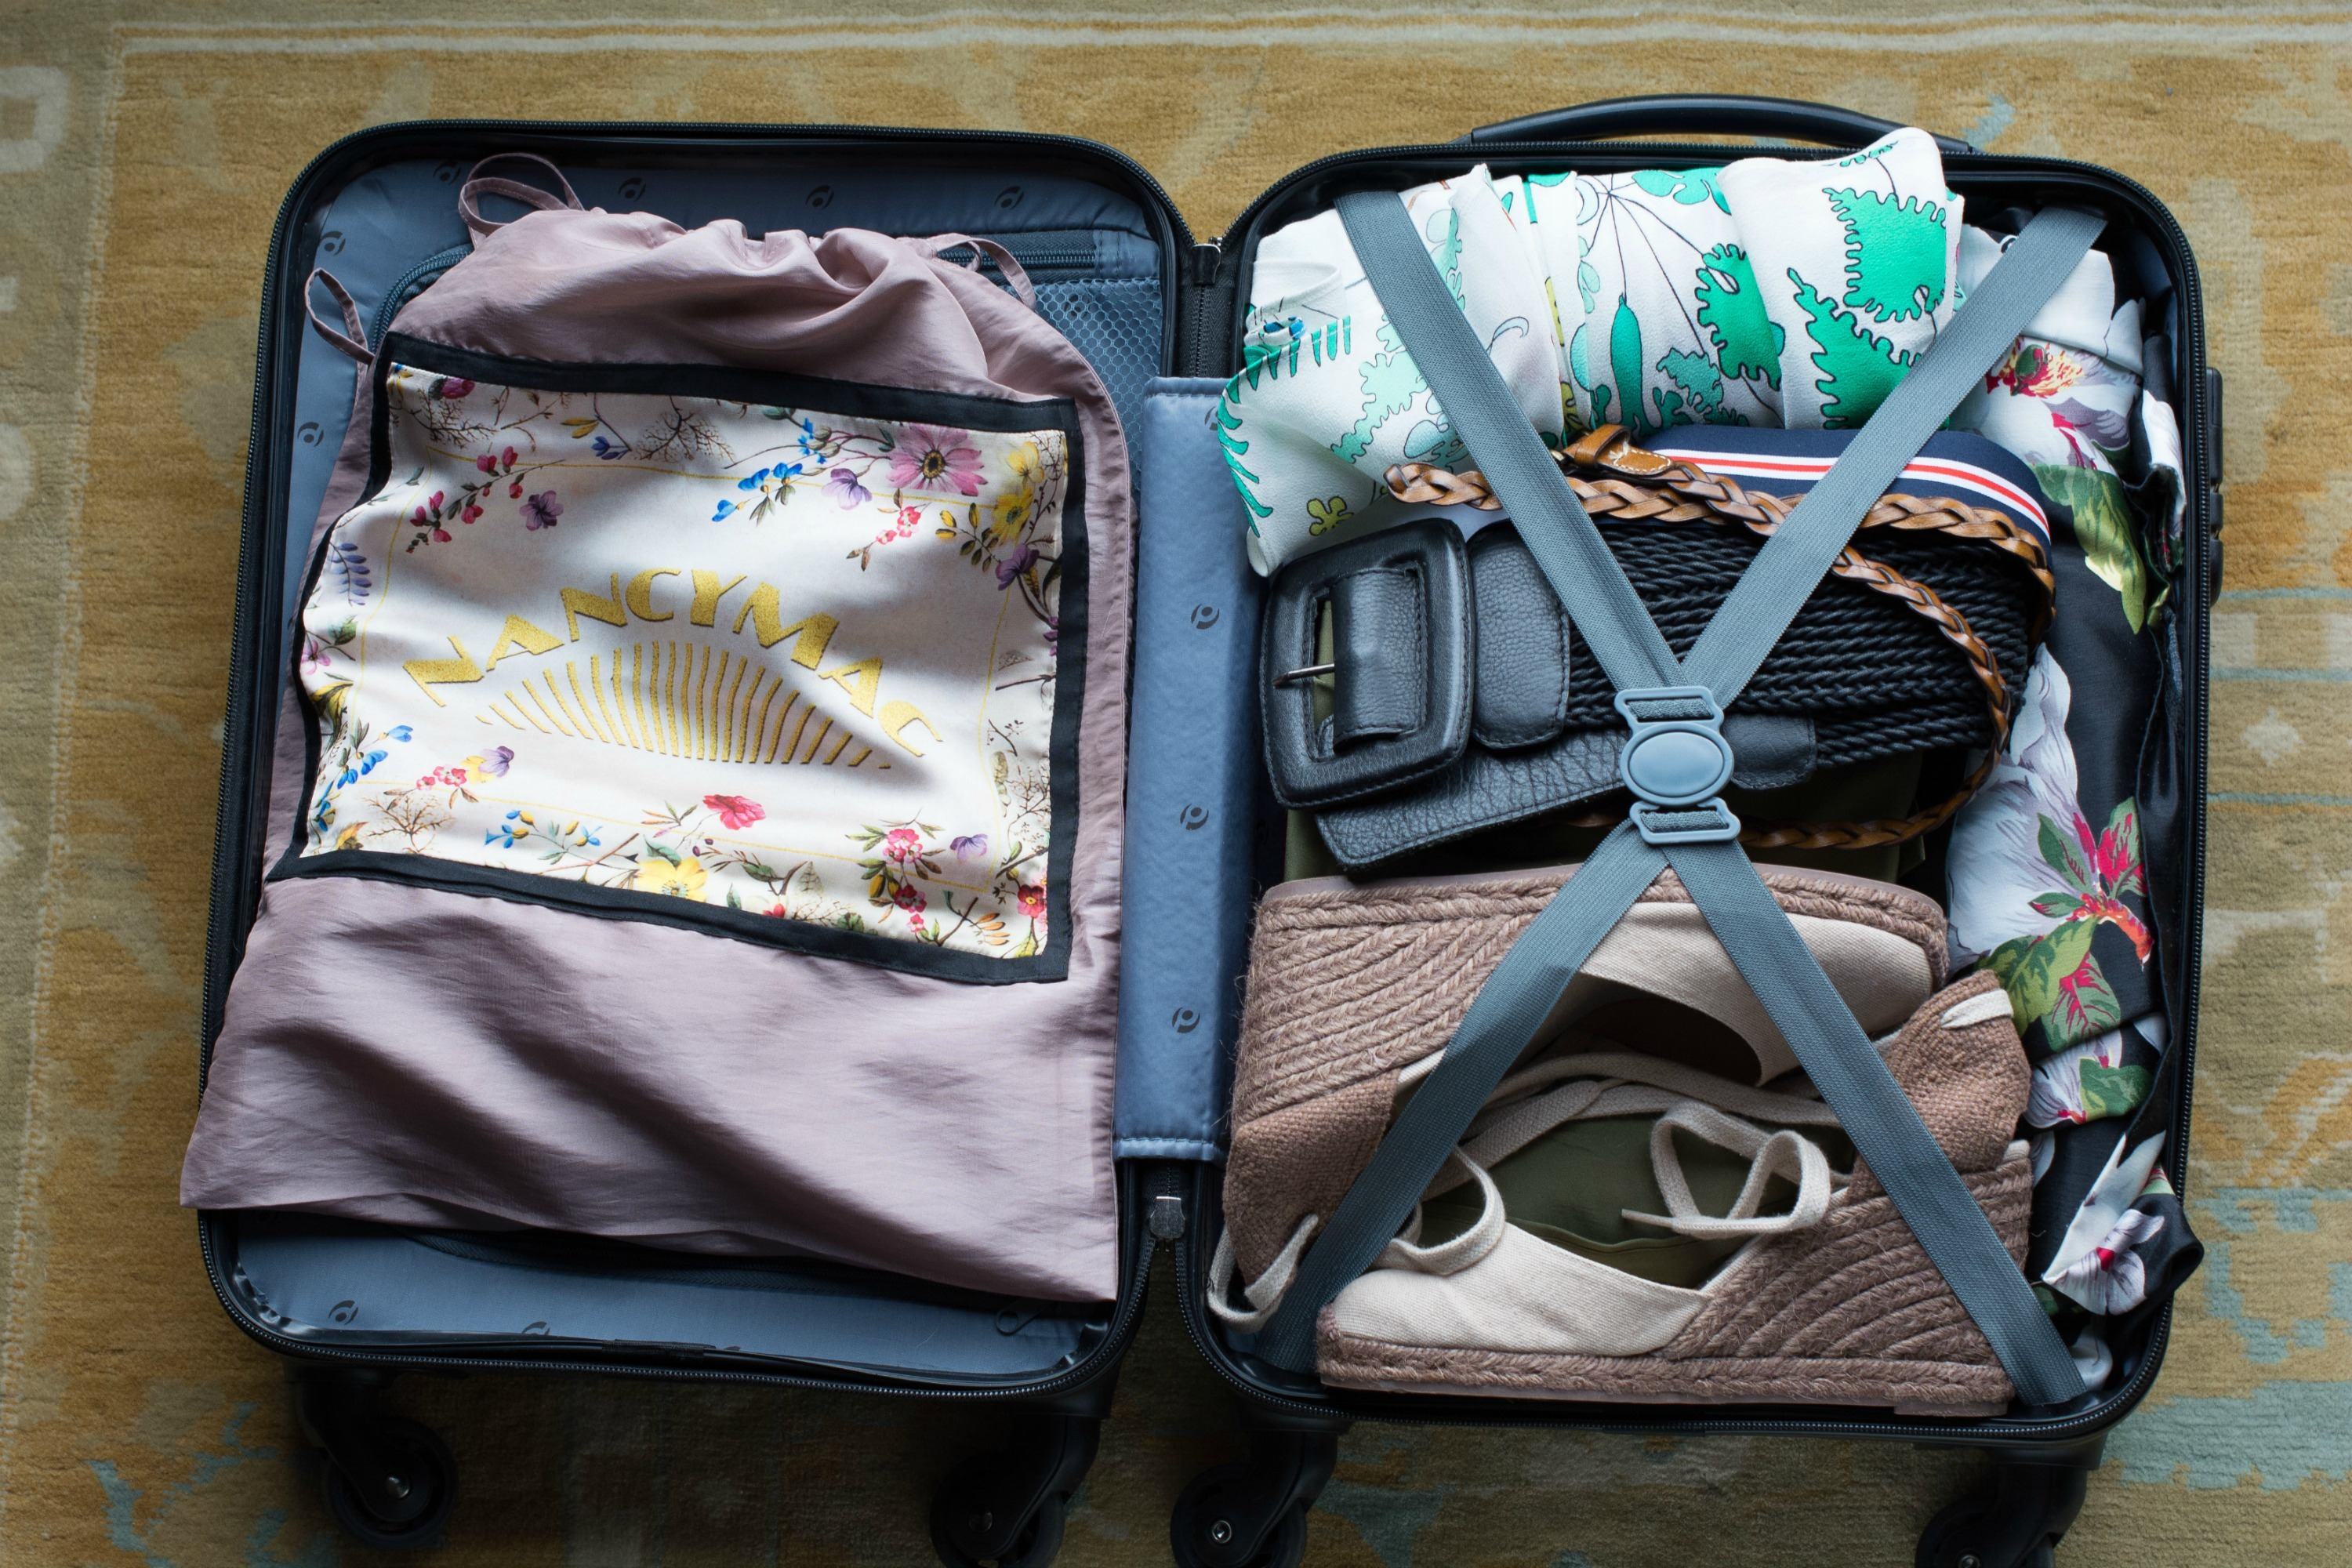 how-to-pack-for-3-days-away-with-just-a-carry-on